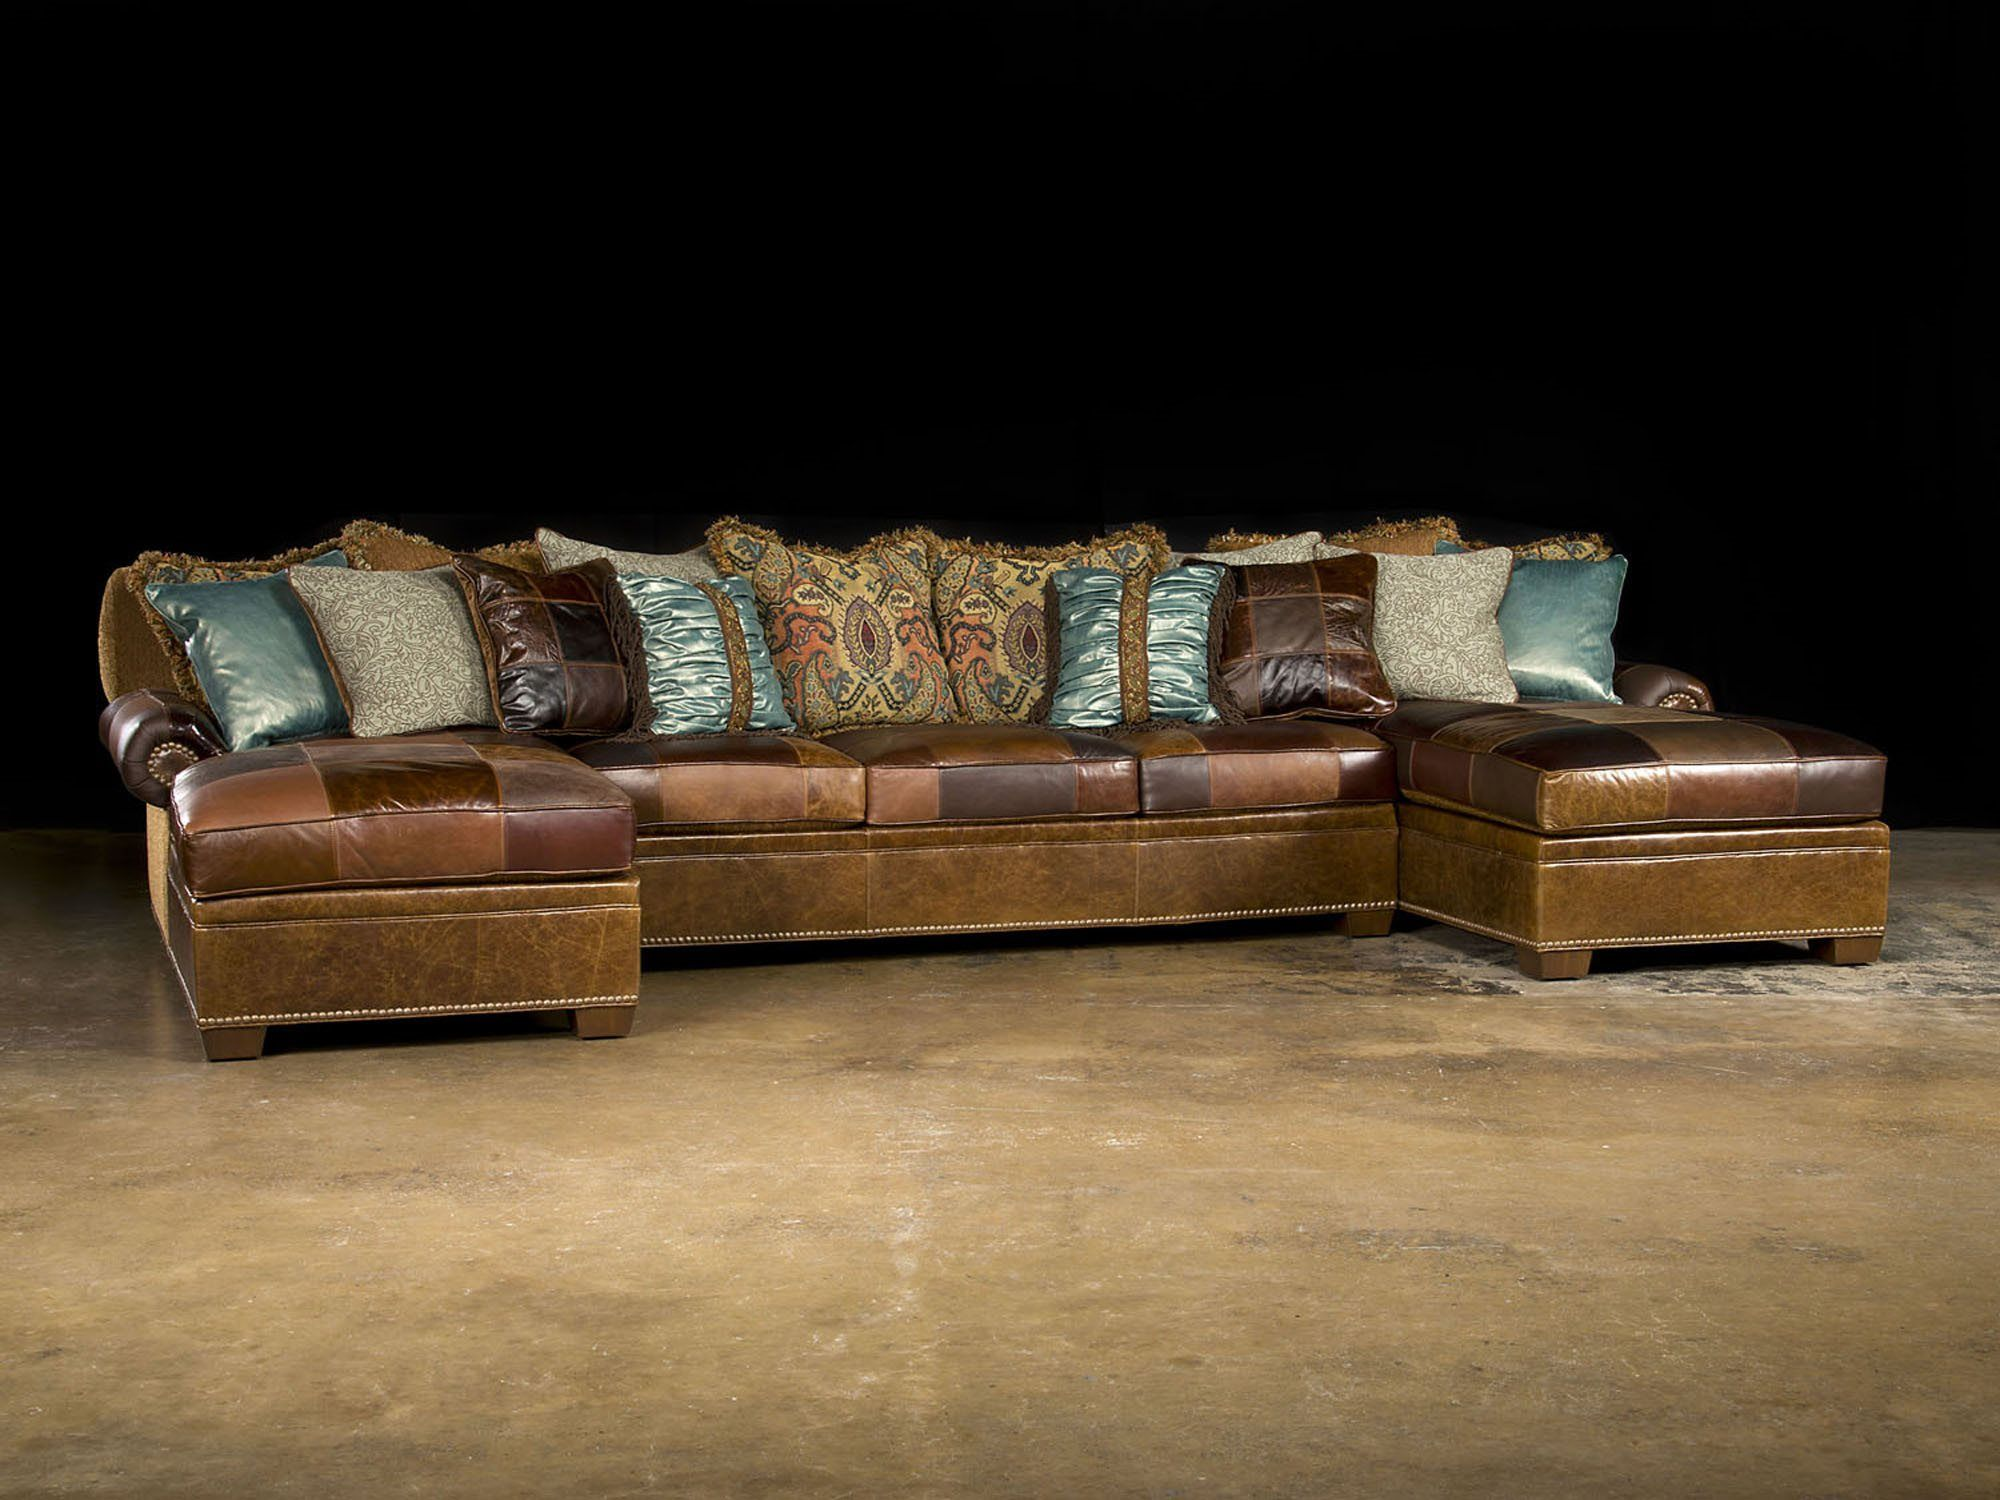 images about PAUL ROBERTS FABULOUS FURNITURE on Pinterest